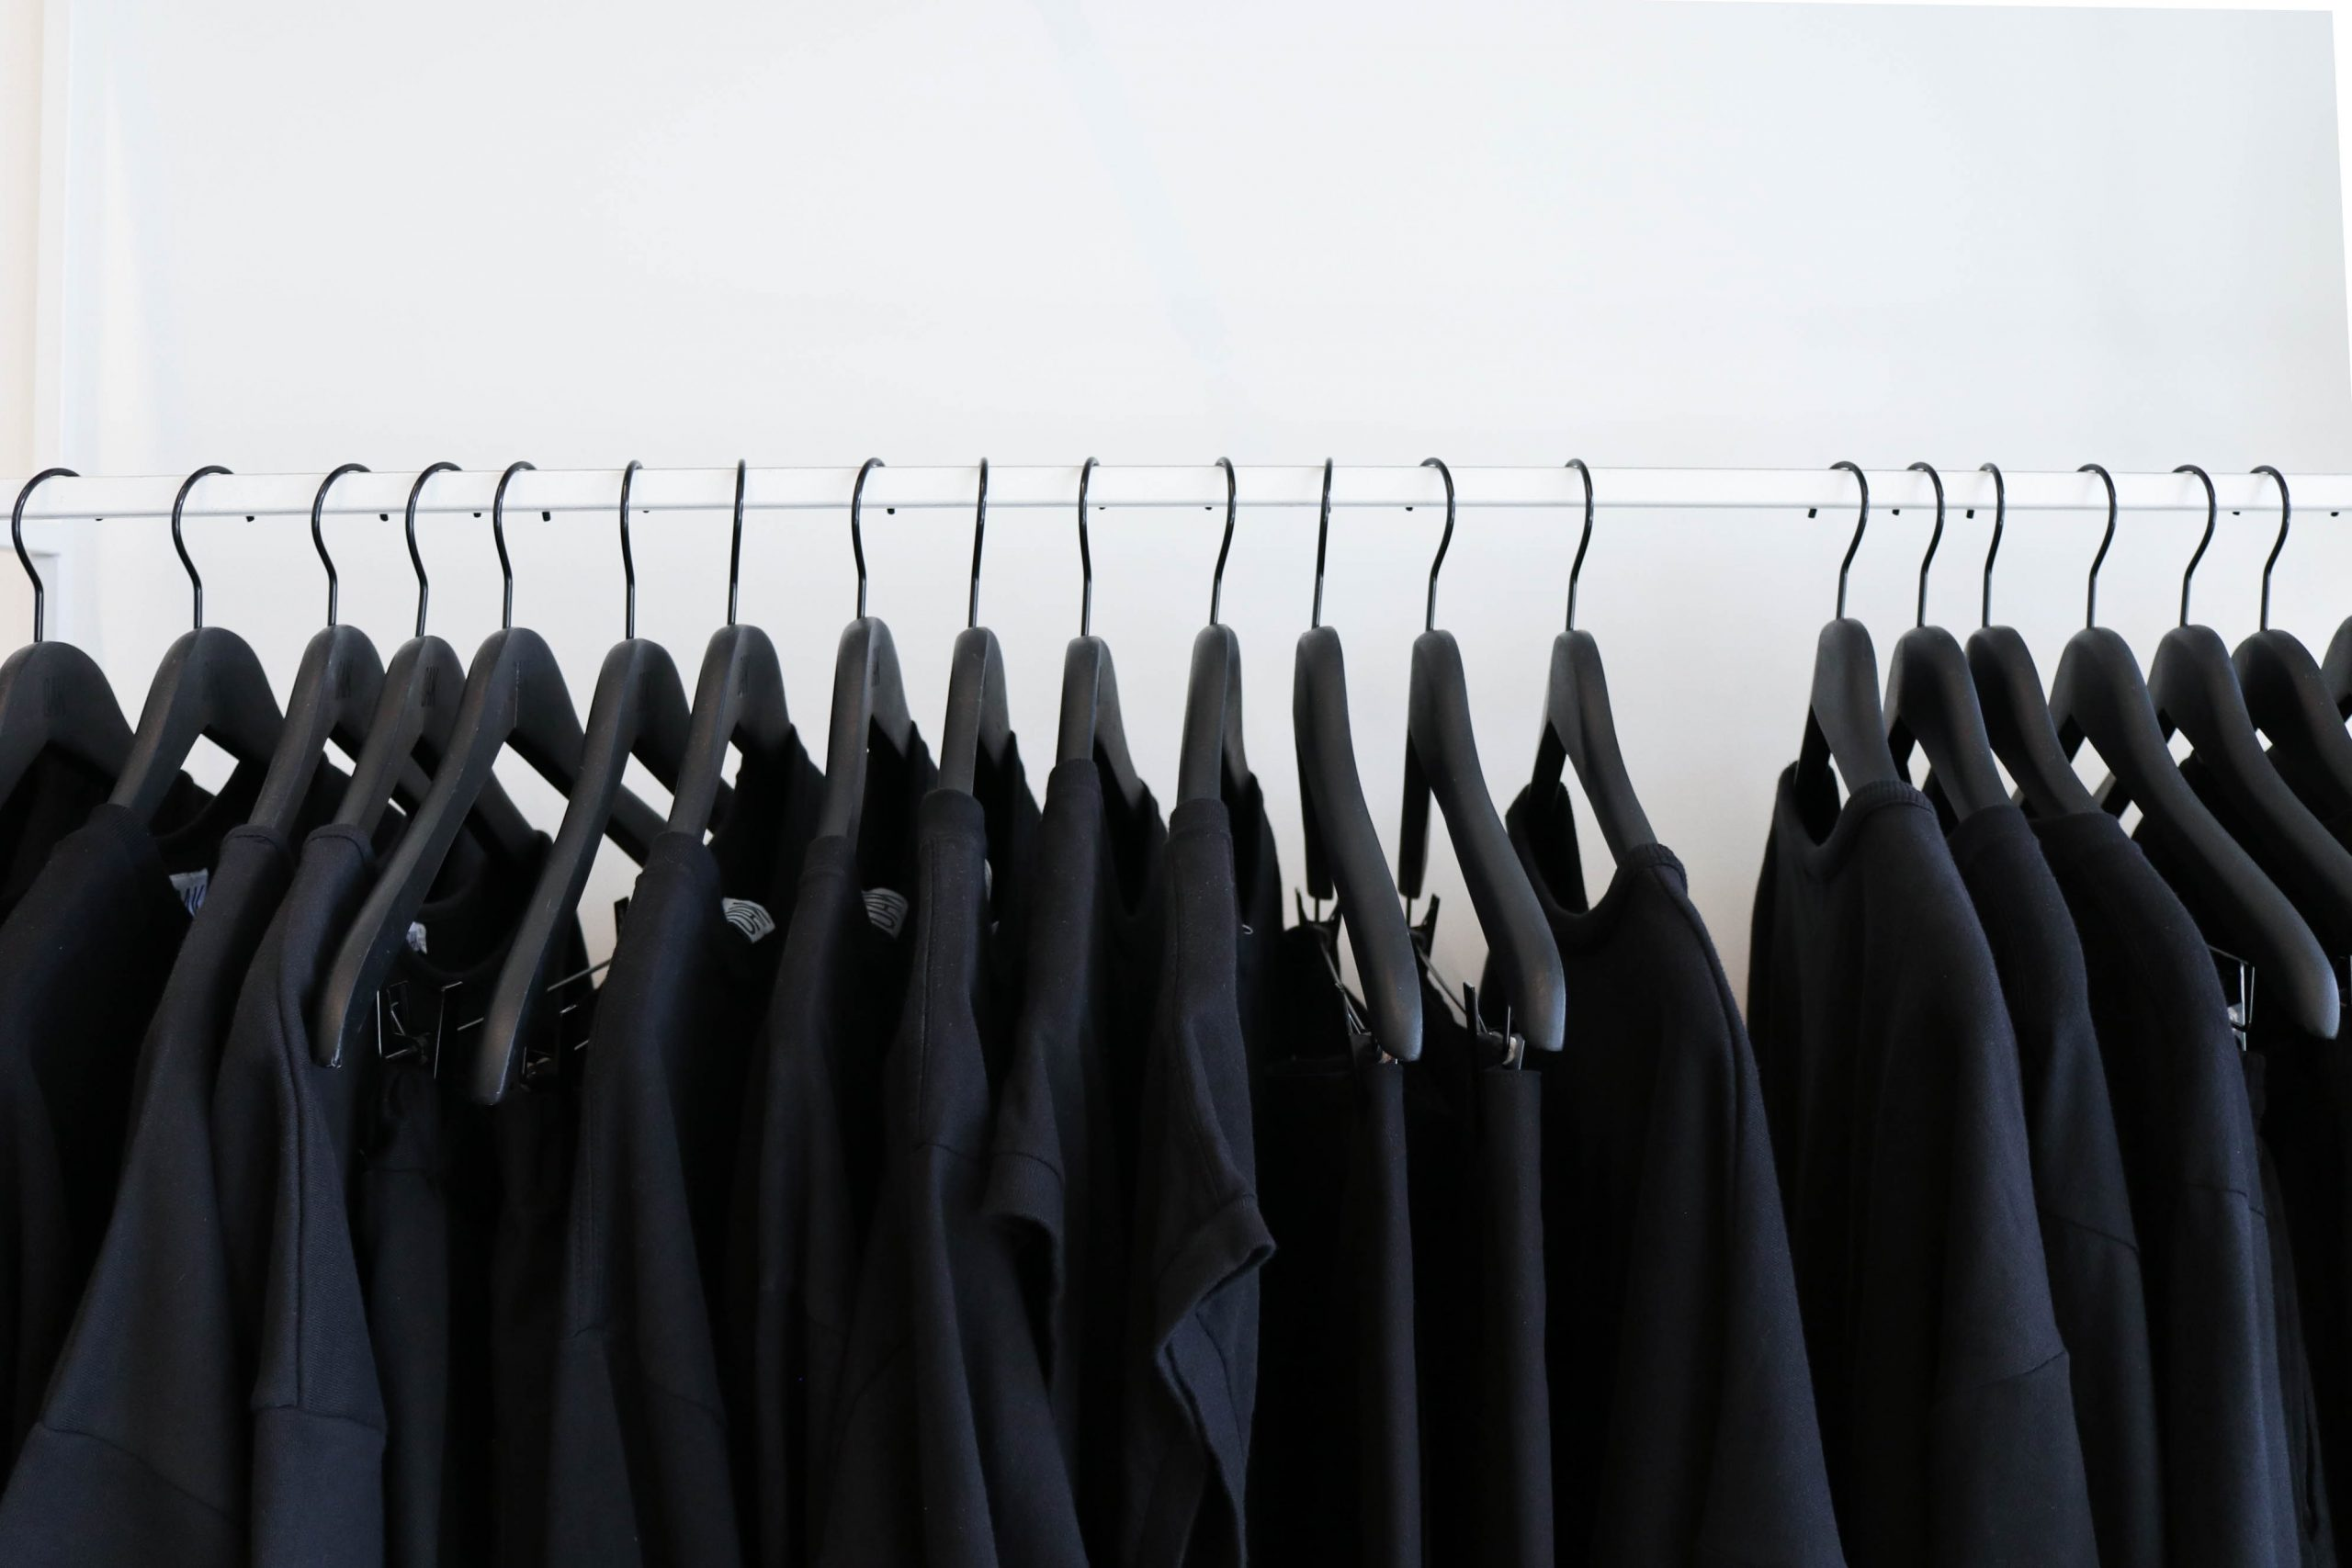 A row of pretty much identical black clothes hangs on a a rod. Gosh, which one should I pick this time?